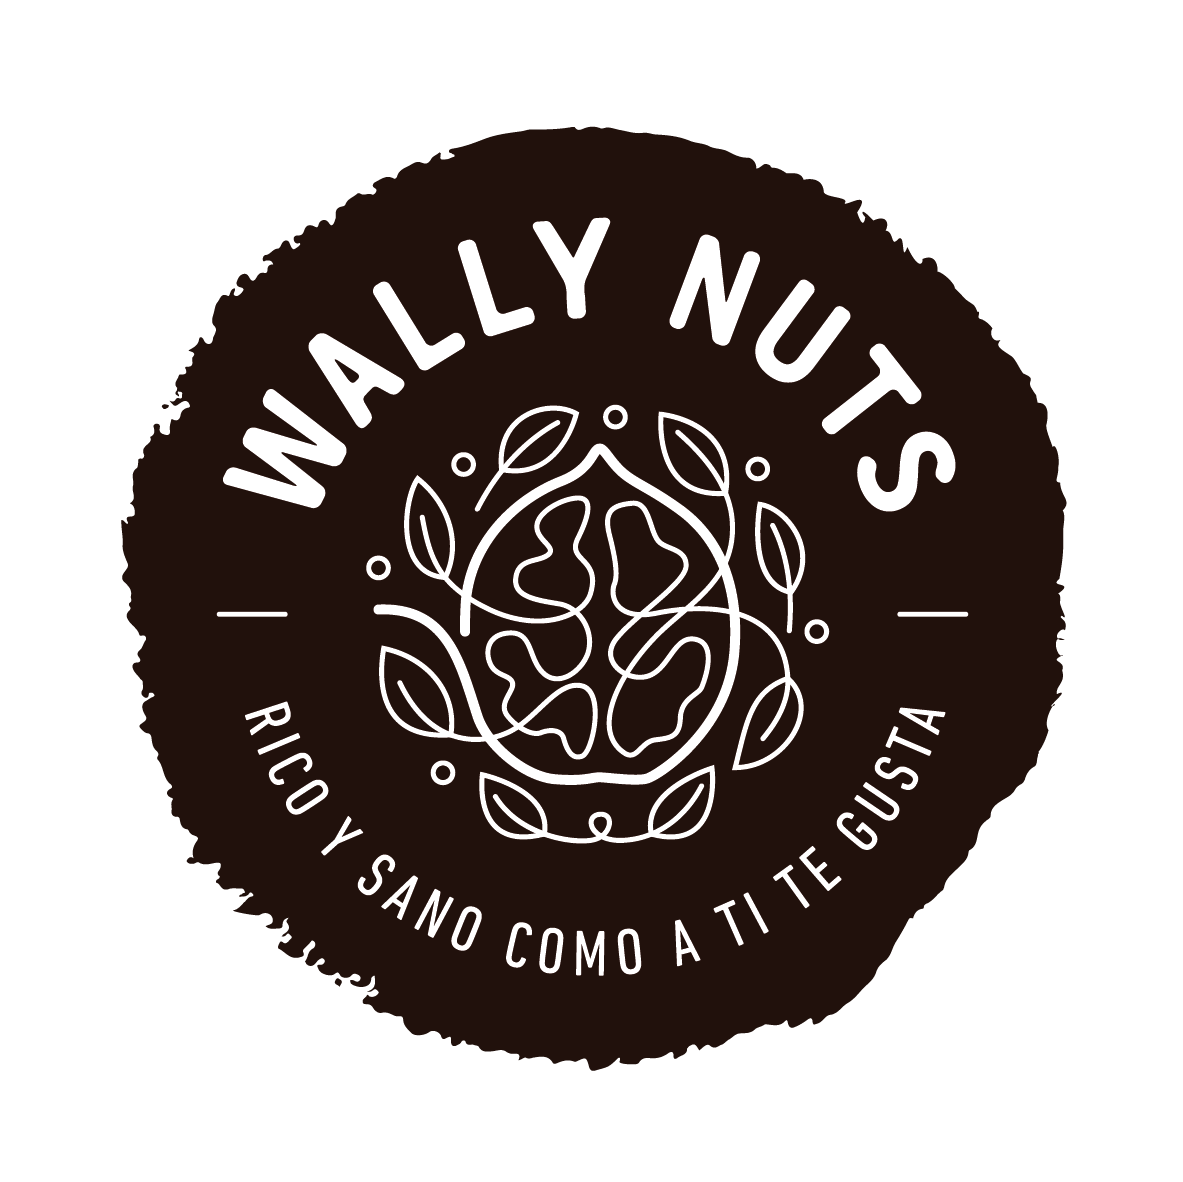 Wally Nuts